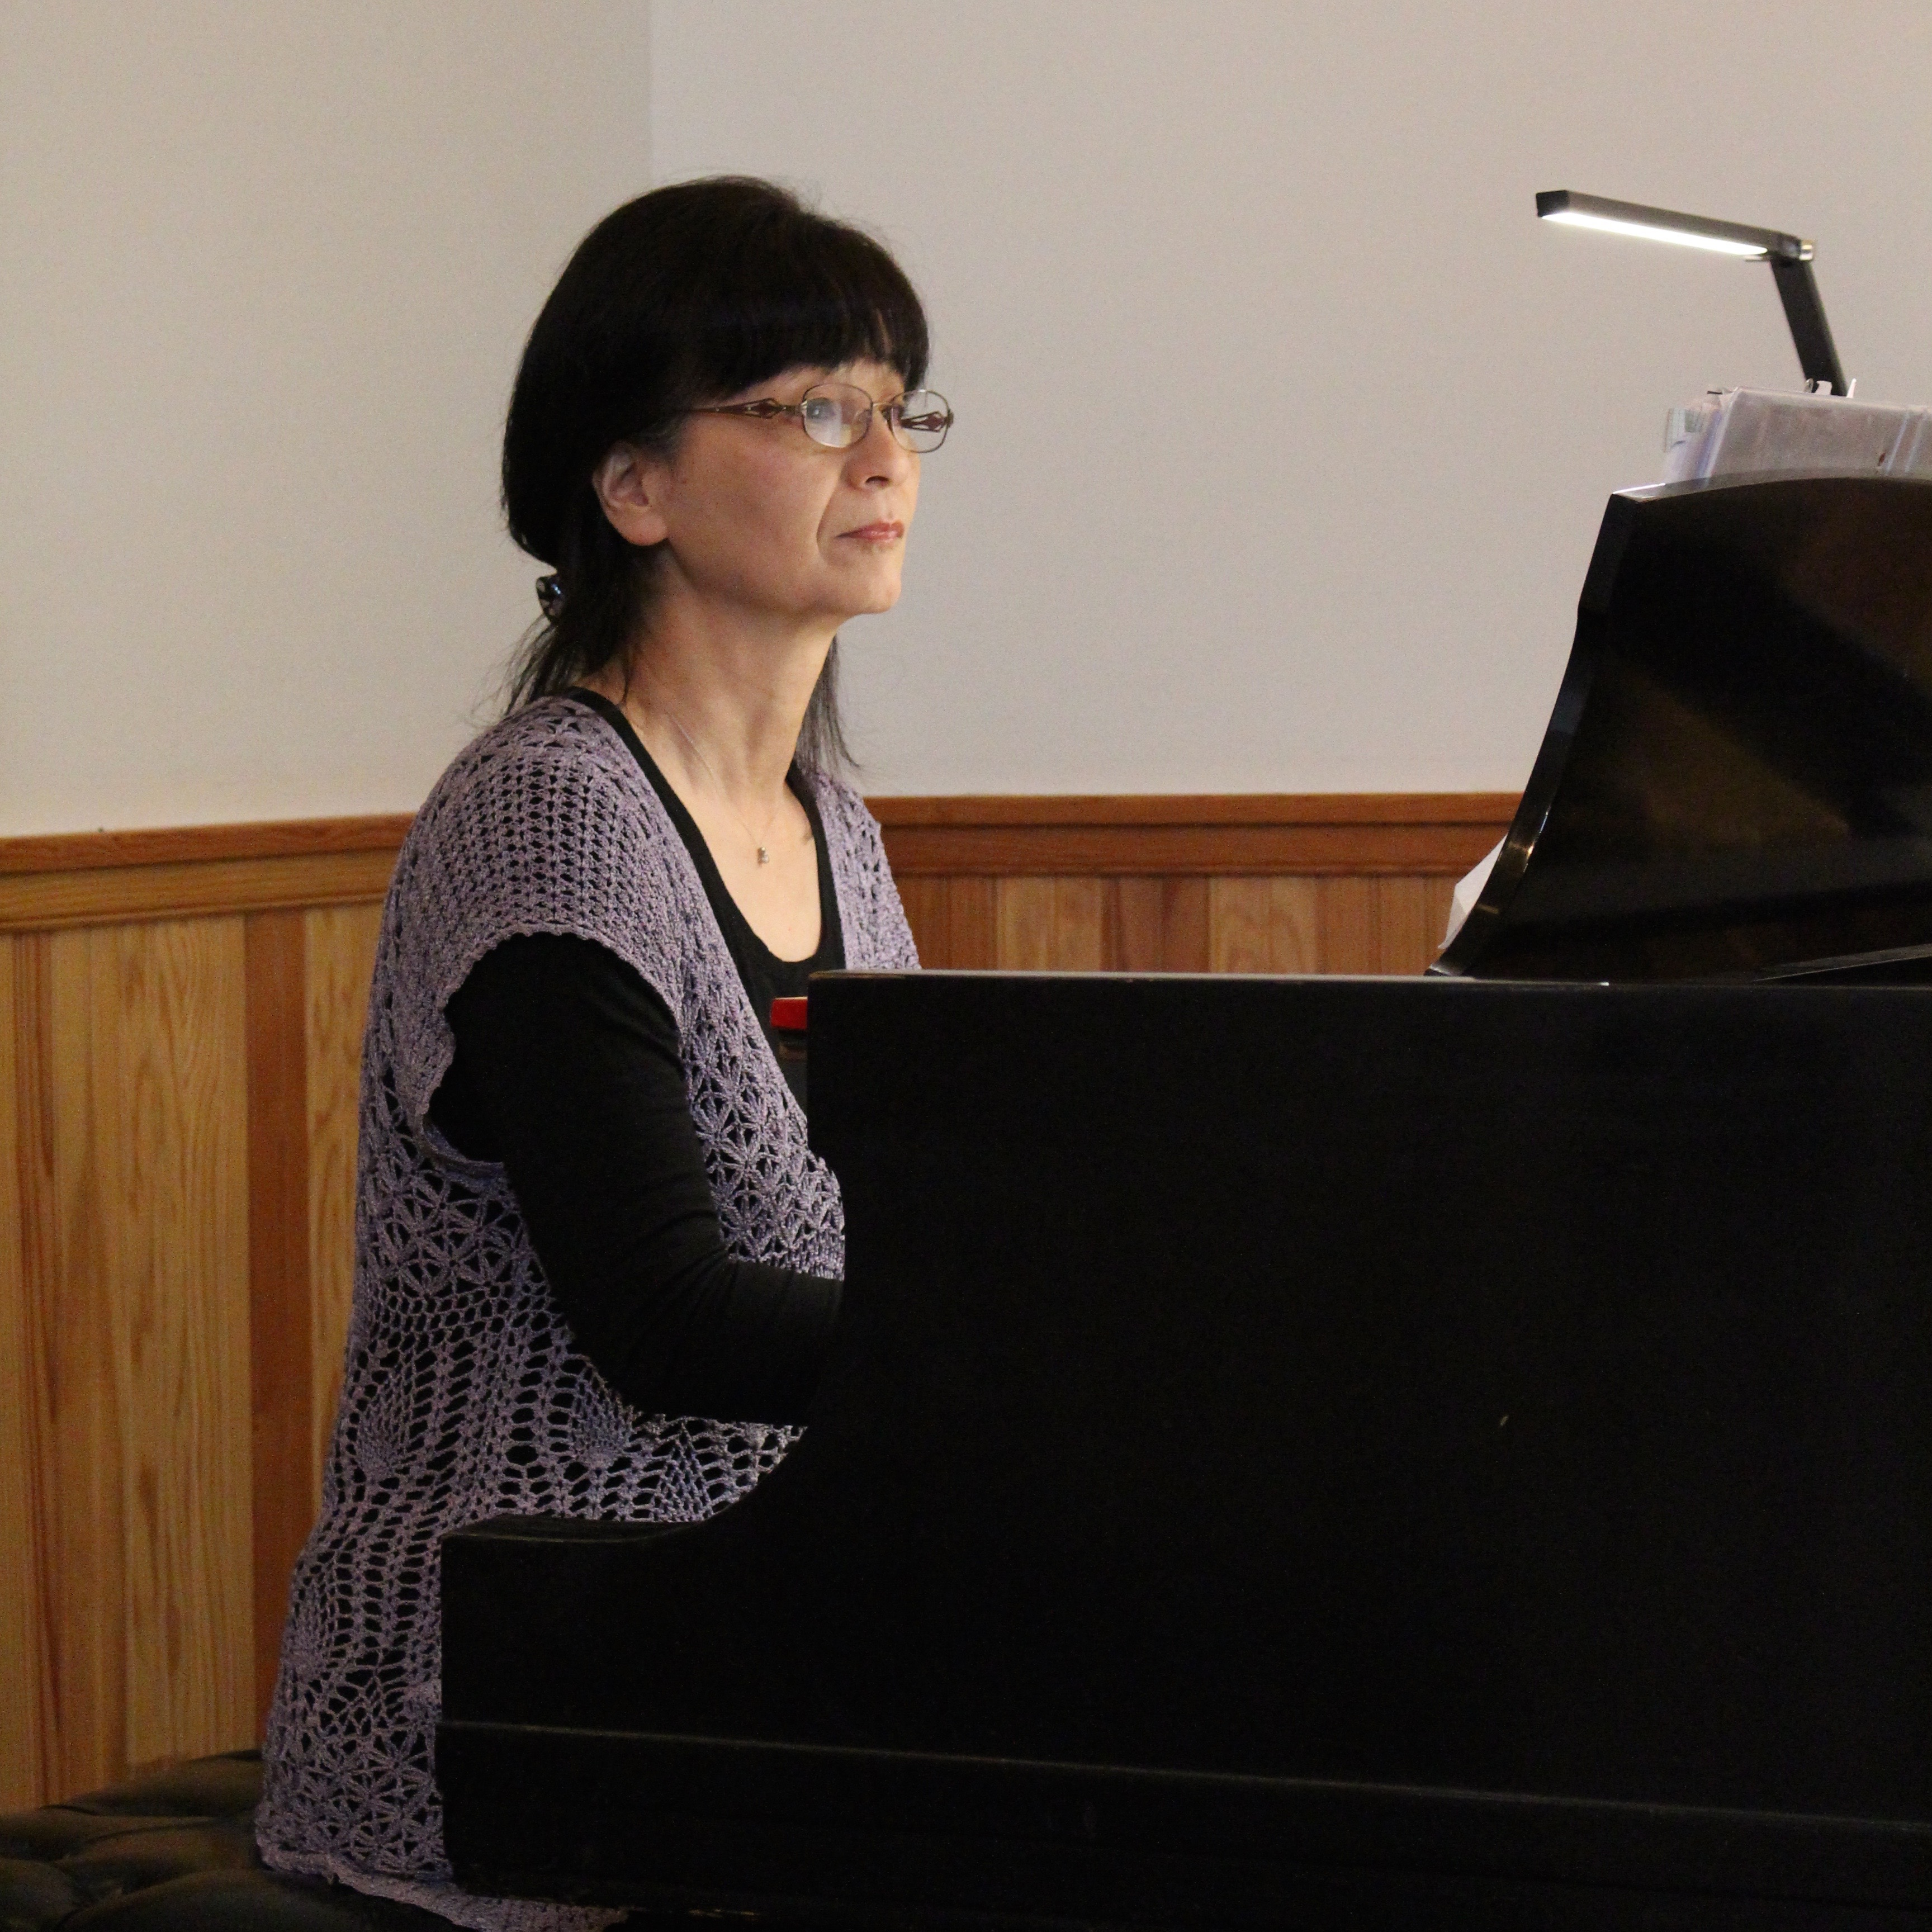 Ikue Goldstein at the Piano